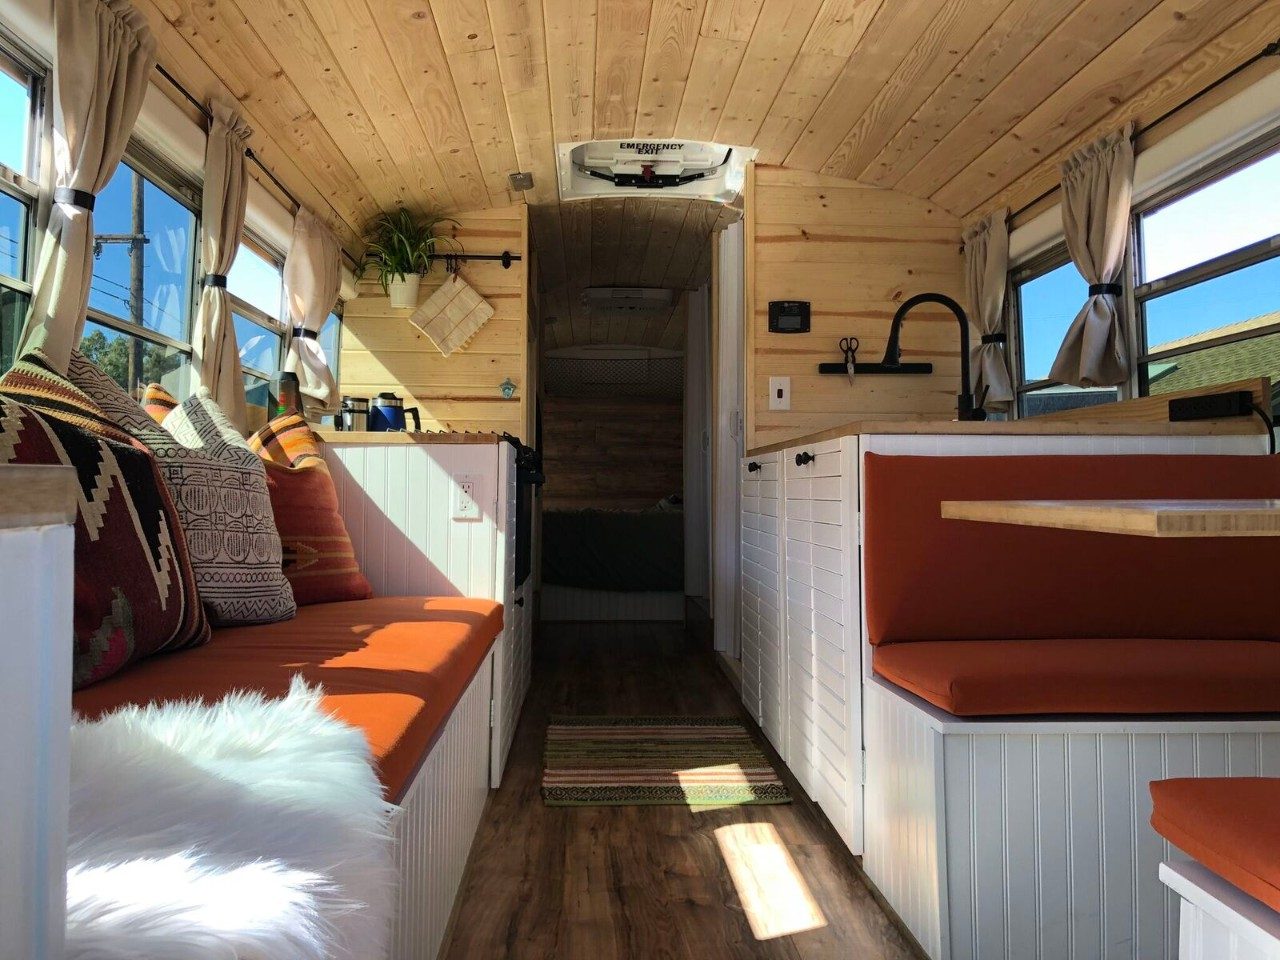 School Bus (Skoolie) Camper Conversion Plan - Outbound Living